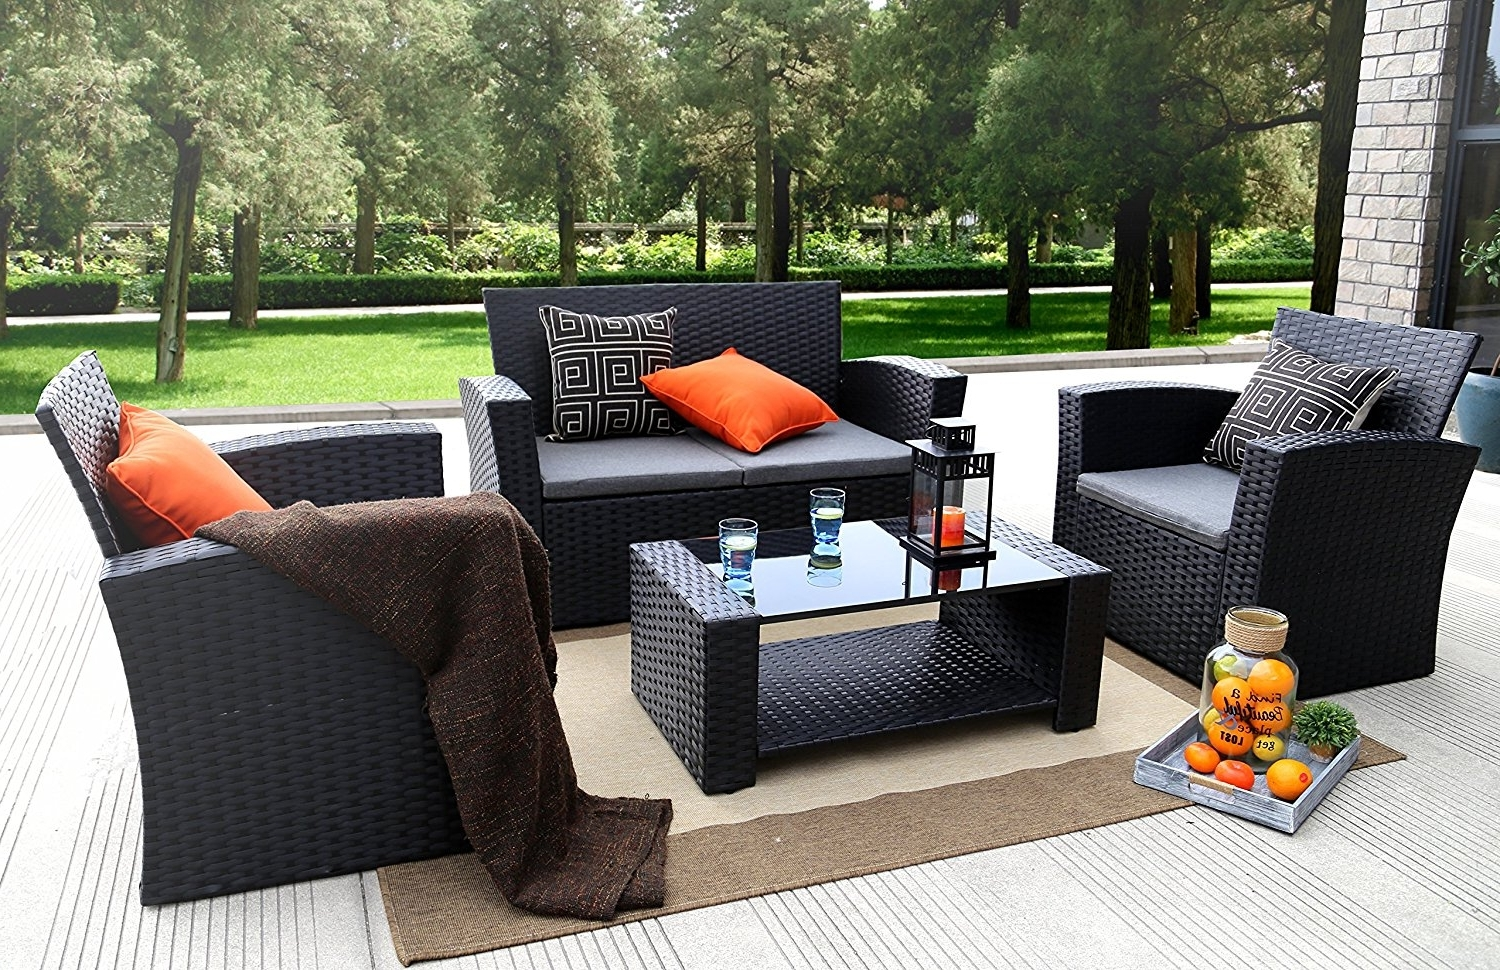 Well Liked Outdoor Sofas And Chairs Throughout Amazon: Baner Garden (N87) 4 Pieces Outdoor Furniture Complete (View 3 of 15)